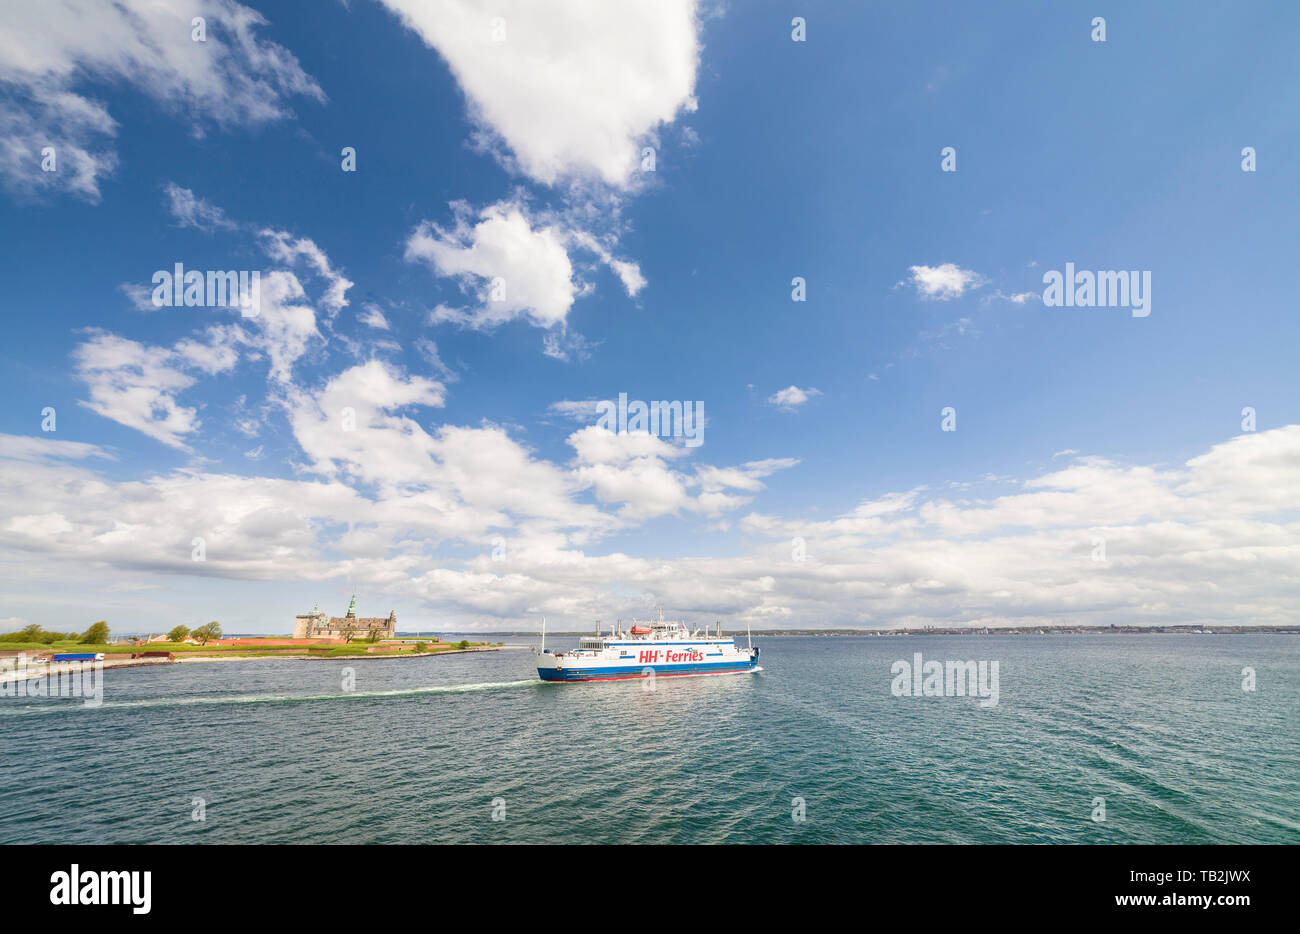 Car ferry to Helsingborg, Sweden, leaving the port of Helsingor, Denmark, with the Kronoborg castle in the background. - Stock Image